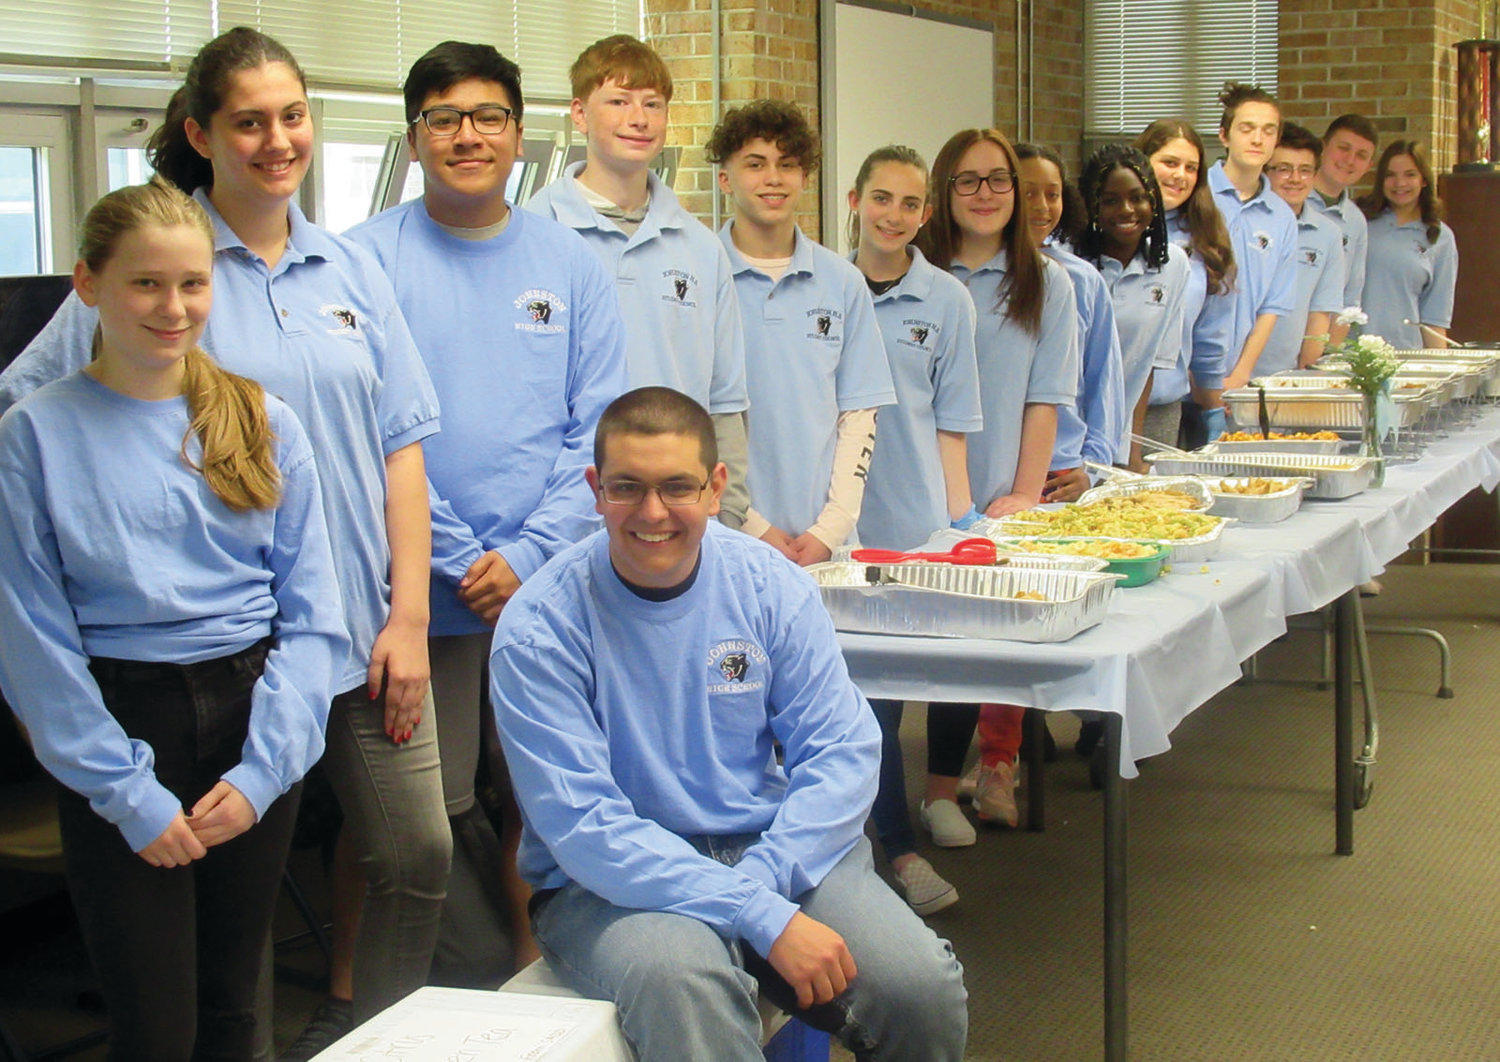 COUNCIL COOKS: The Johnston High School Student Council members who turned cooks for last Thursday's Teacher Appreciation Week Luncheon are, from left, Zachary Zambarano, Trista Clark, Sarah Monahan, Caleb Lee, Joe Boom, Carlos Monteiro, Charles Holhmier, Janet Clements, A'amani Maxi, Lala Olagundoye, Emily Raposo, Demetri Demetroplis, Nick Petrillo, Nick Cronan and Aria Petrella.